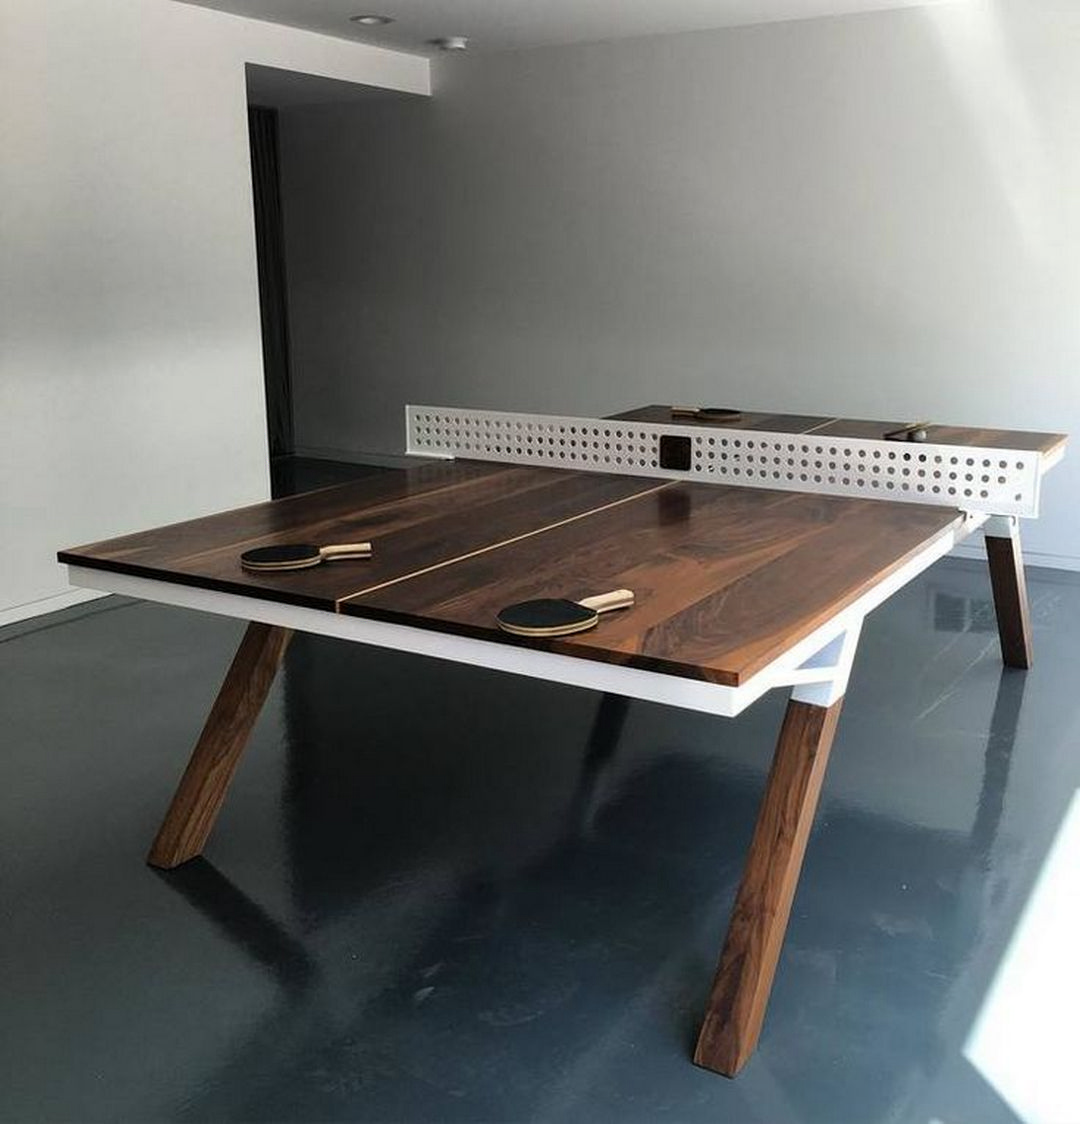 50 Ping Pong Table Tennis Table Designs Https Www Futuristarchitecture Com 14248 Ping Pong Table Html Ping Pong Table Best Ping Pong Table Ping Pong